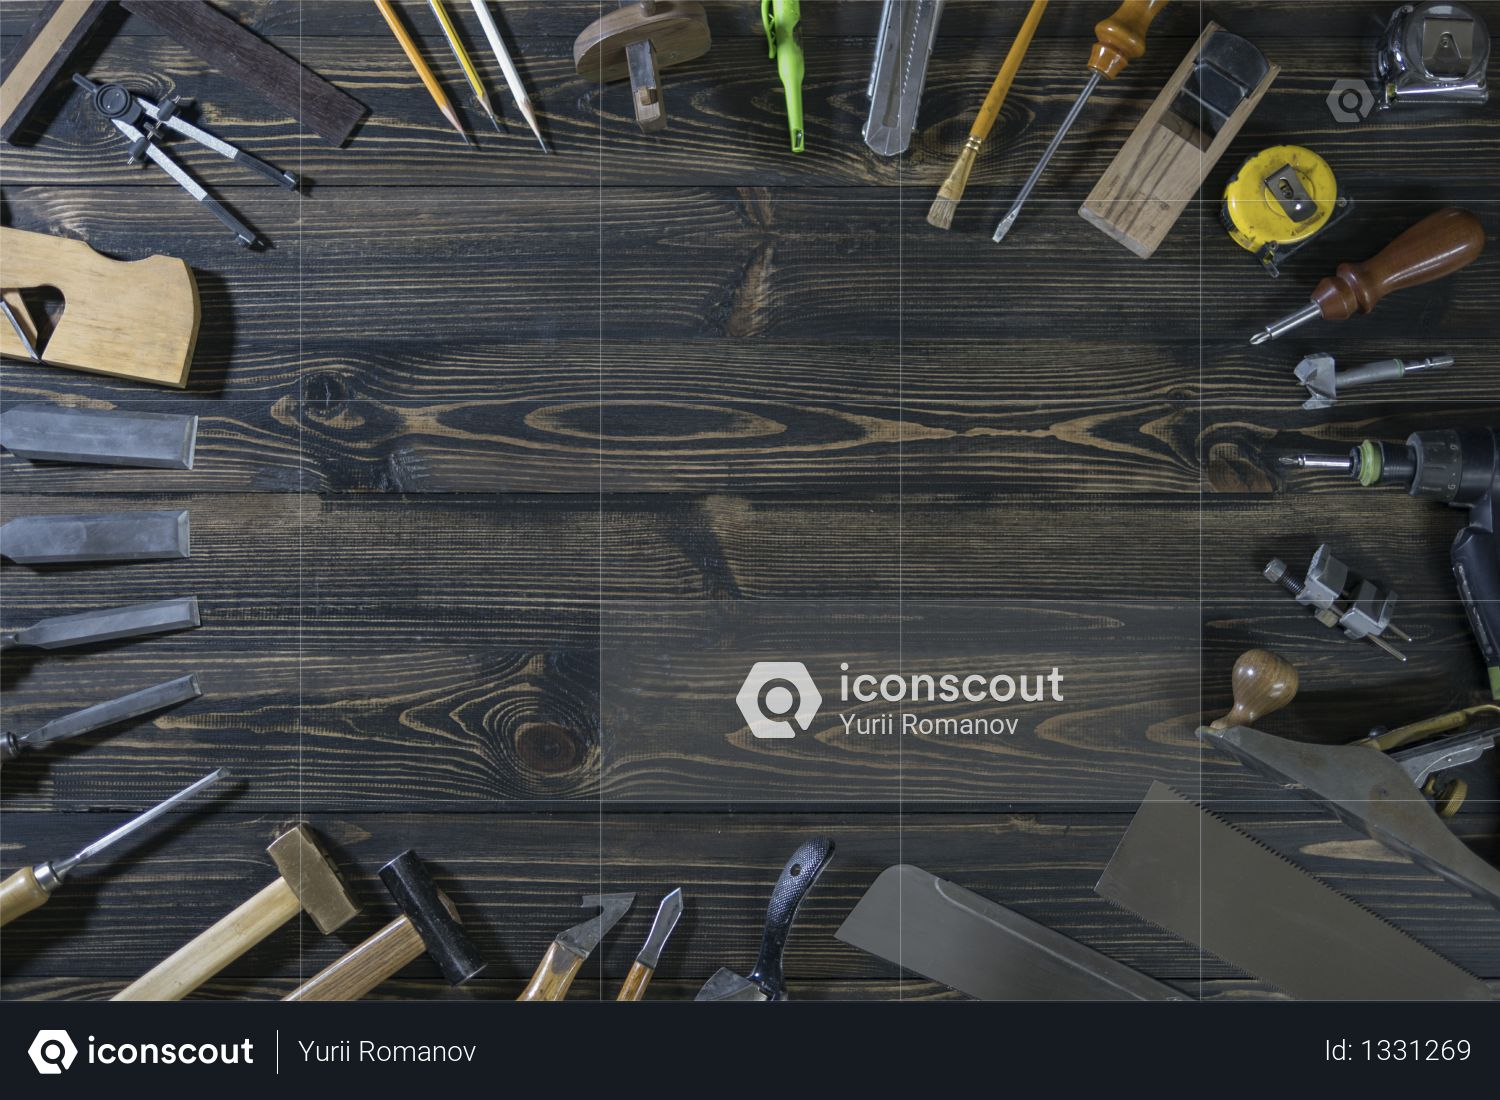 International worker's labour day. carpentry tool. copy space Photo